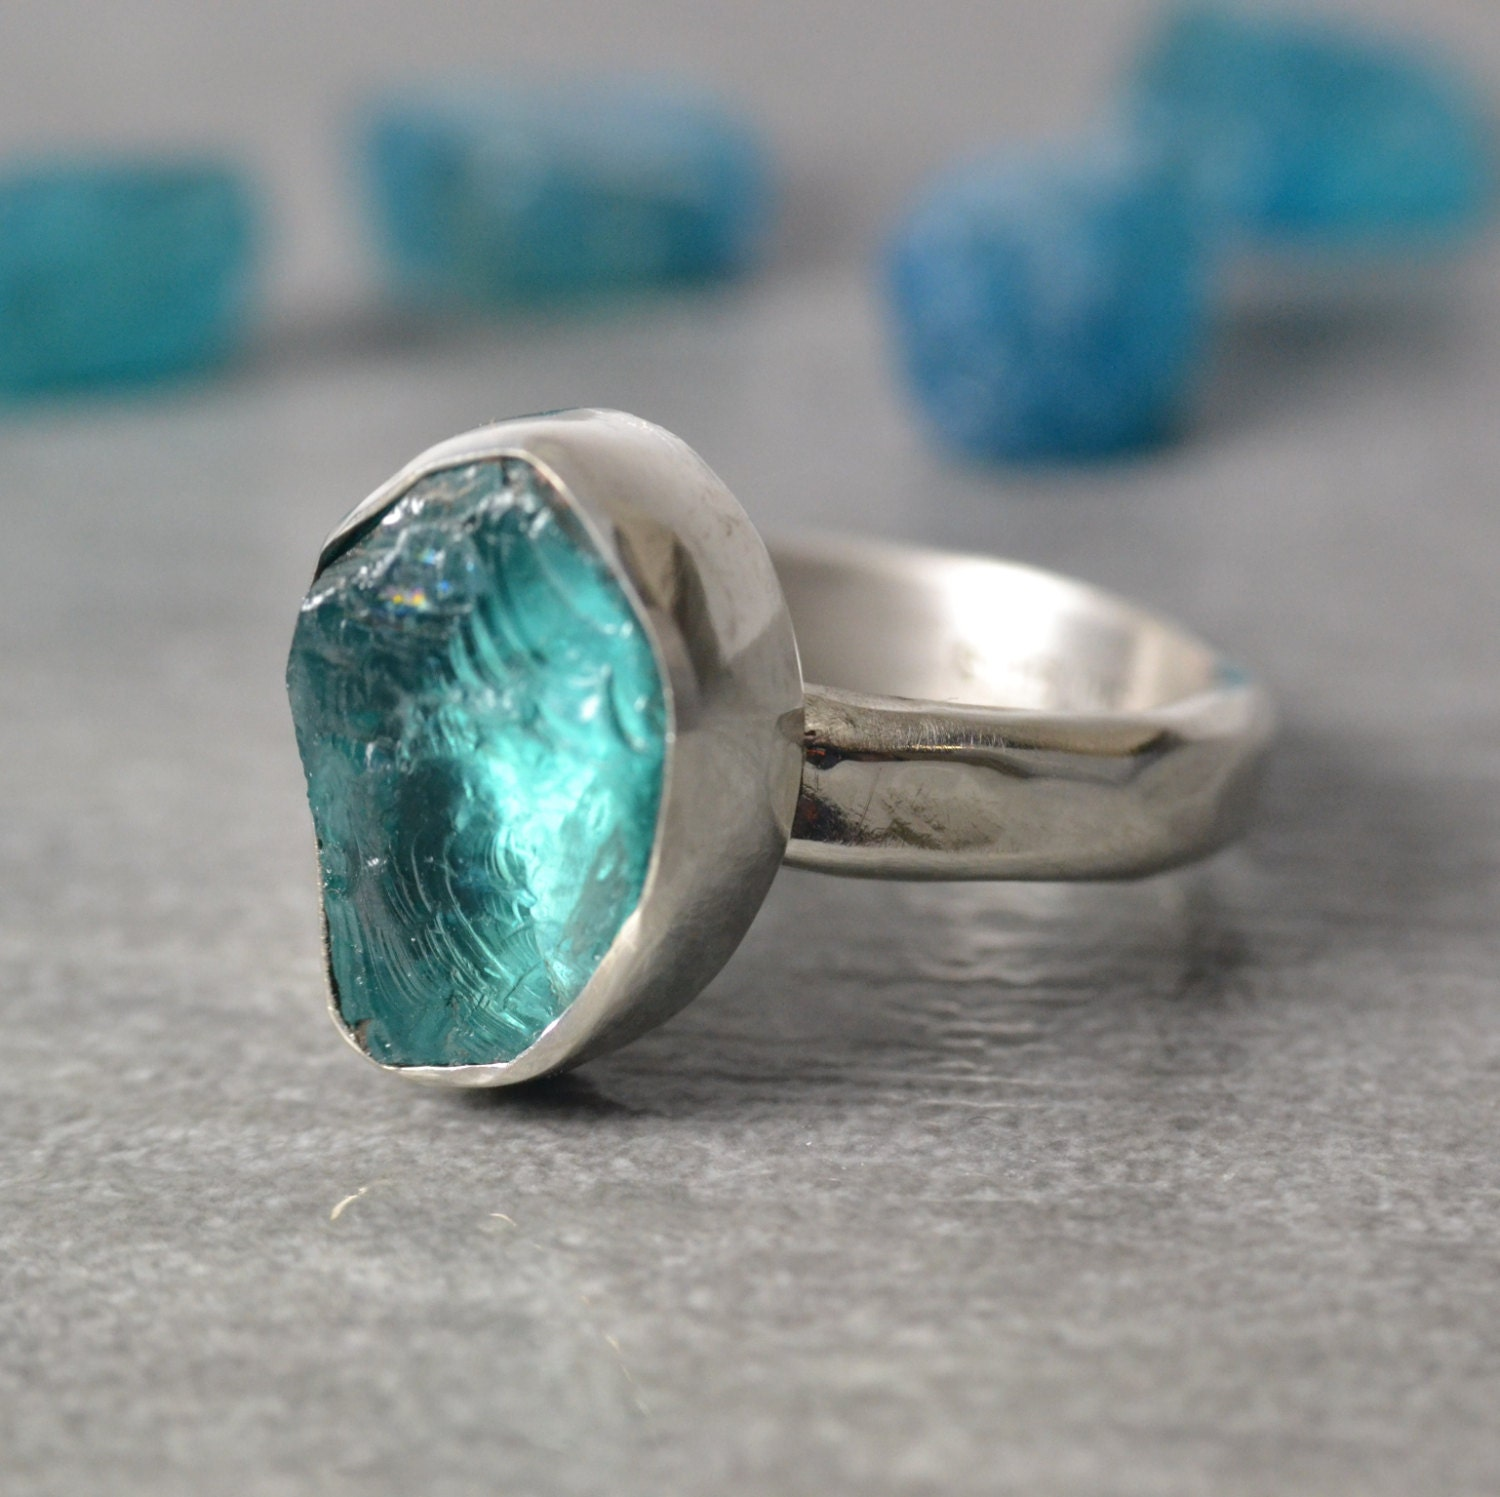 Neon Blue Apatite Ring Rough Gemstone Sterling Silver Ring